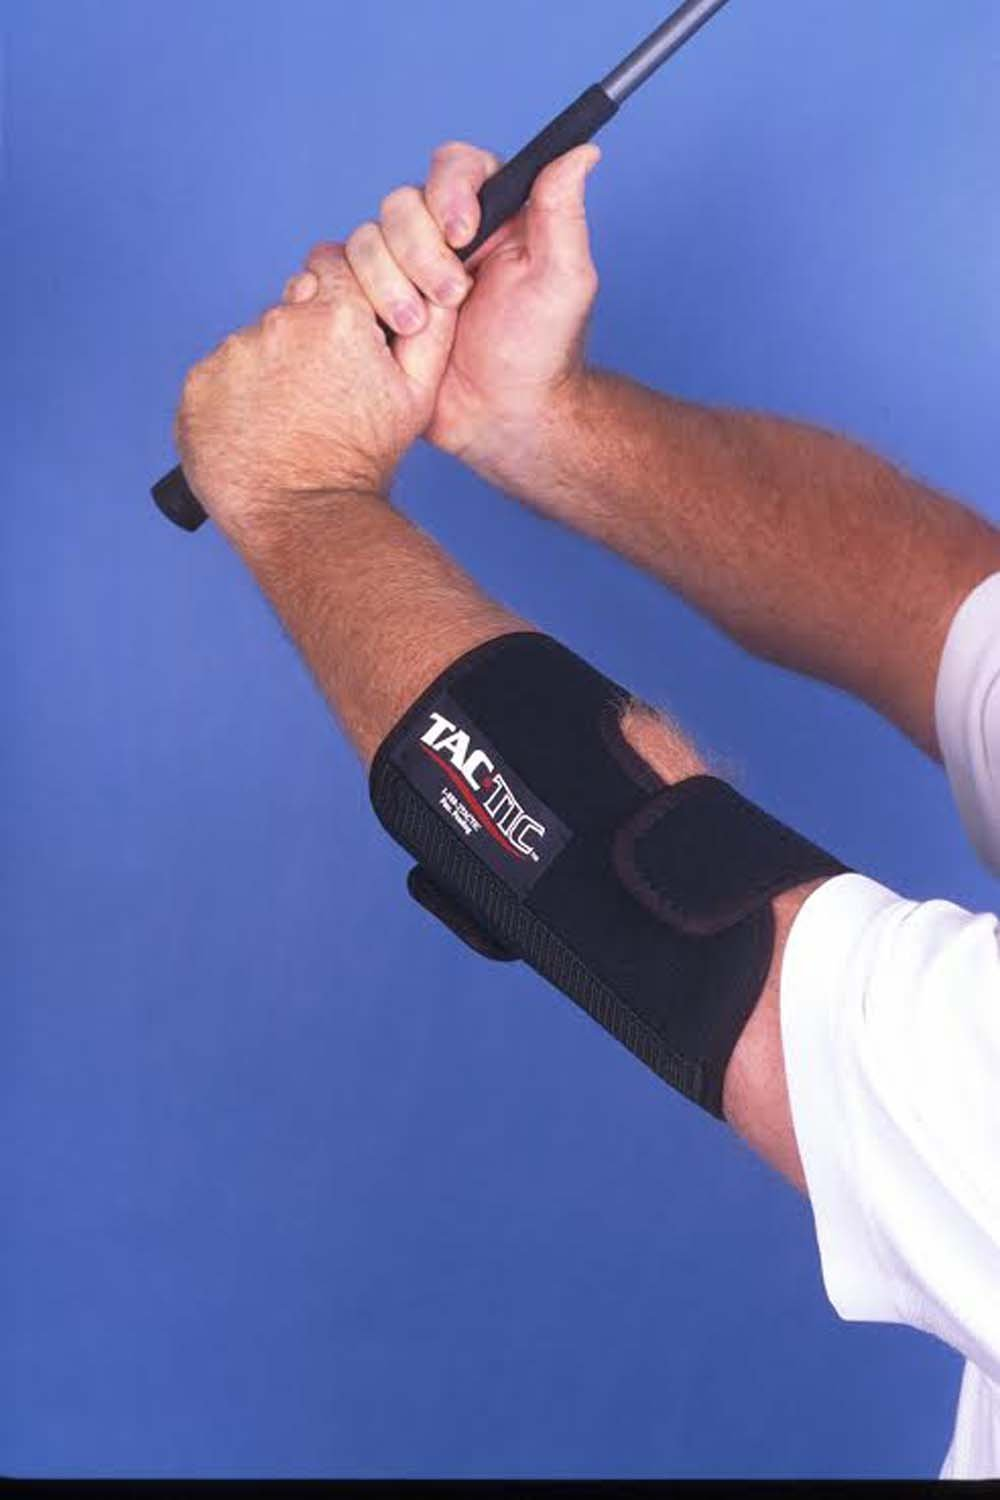 Tac Tic Elbow Golf Swing Tempo Trainer by Tic Tac